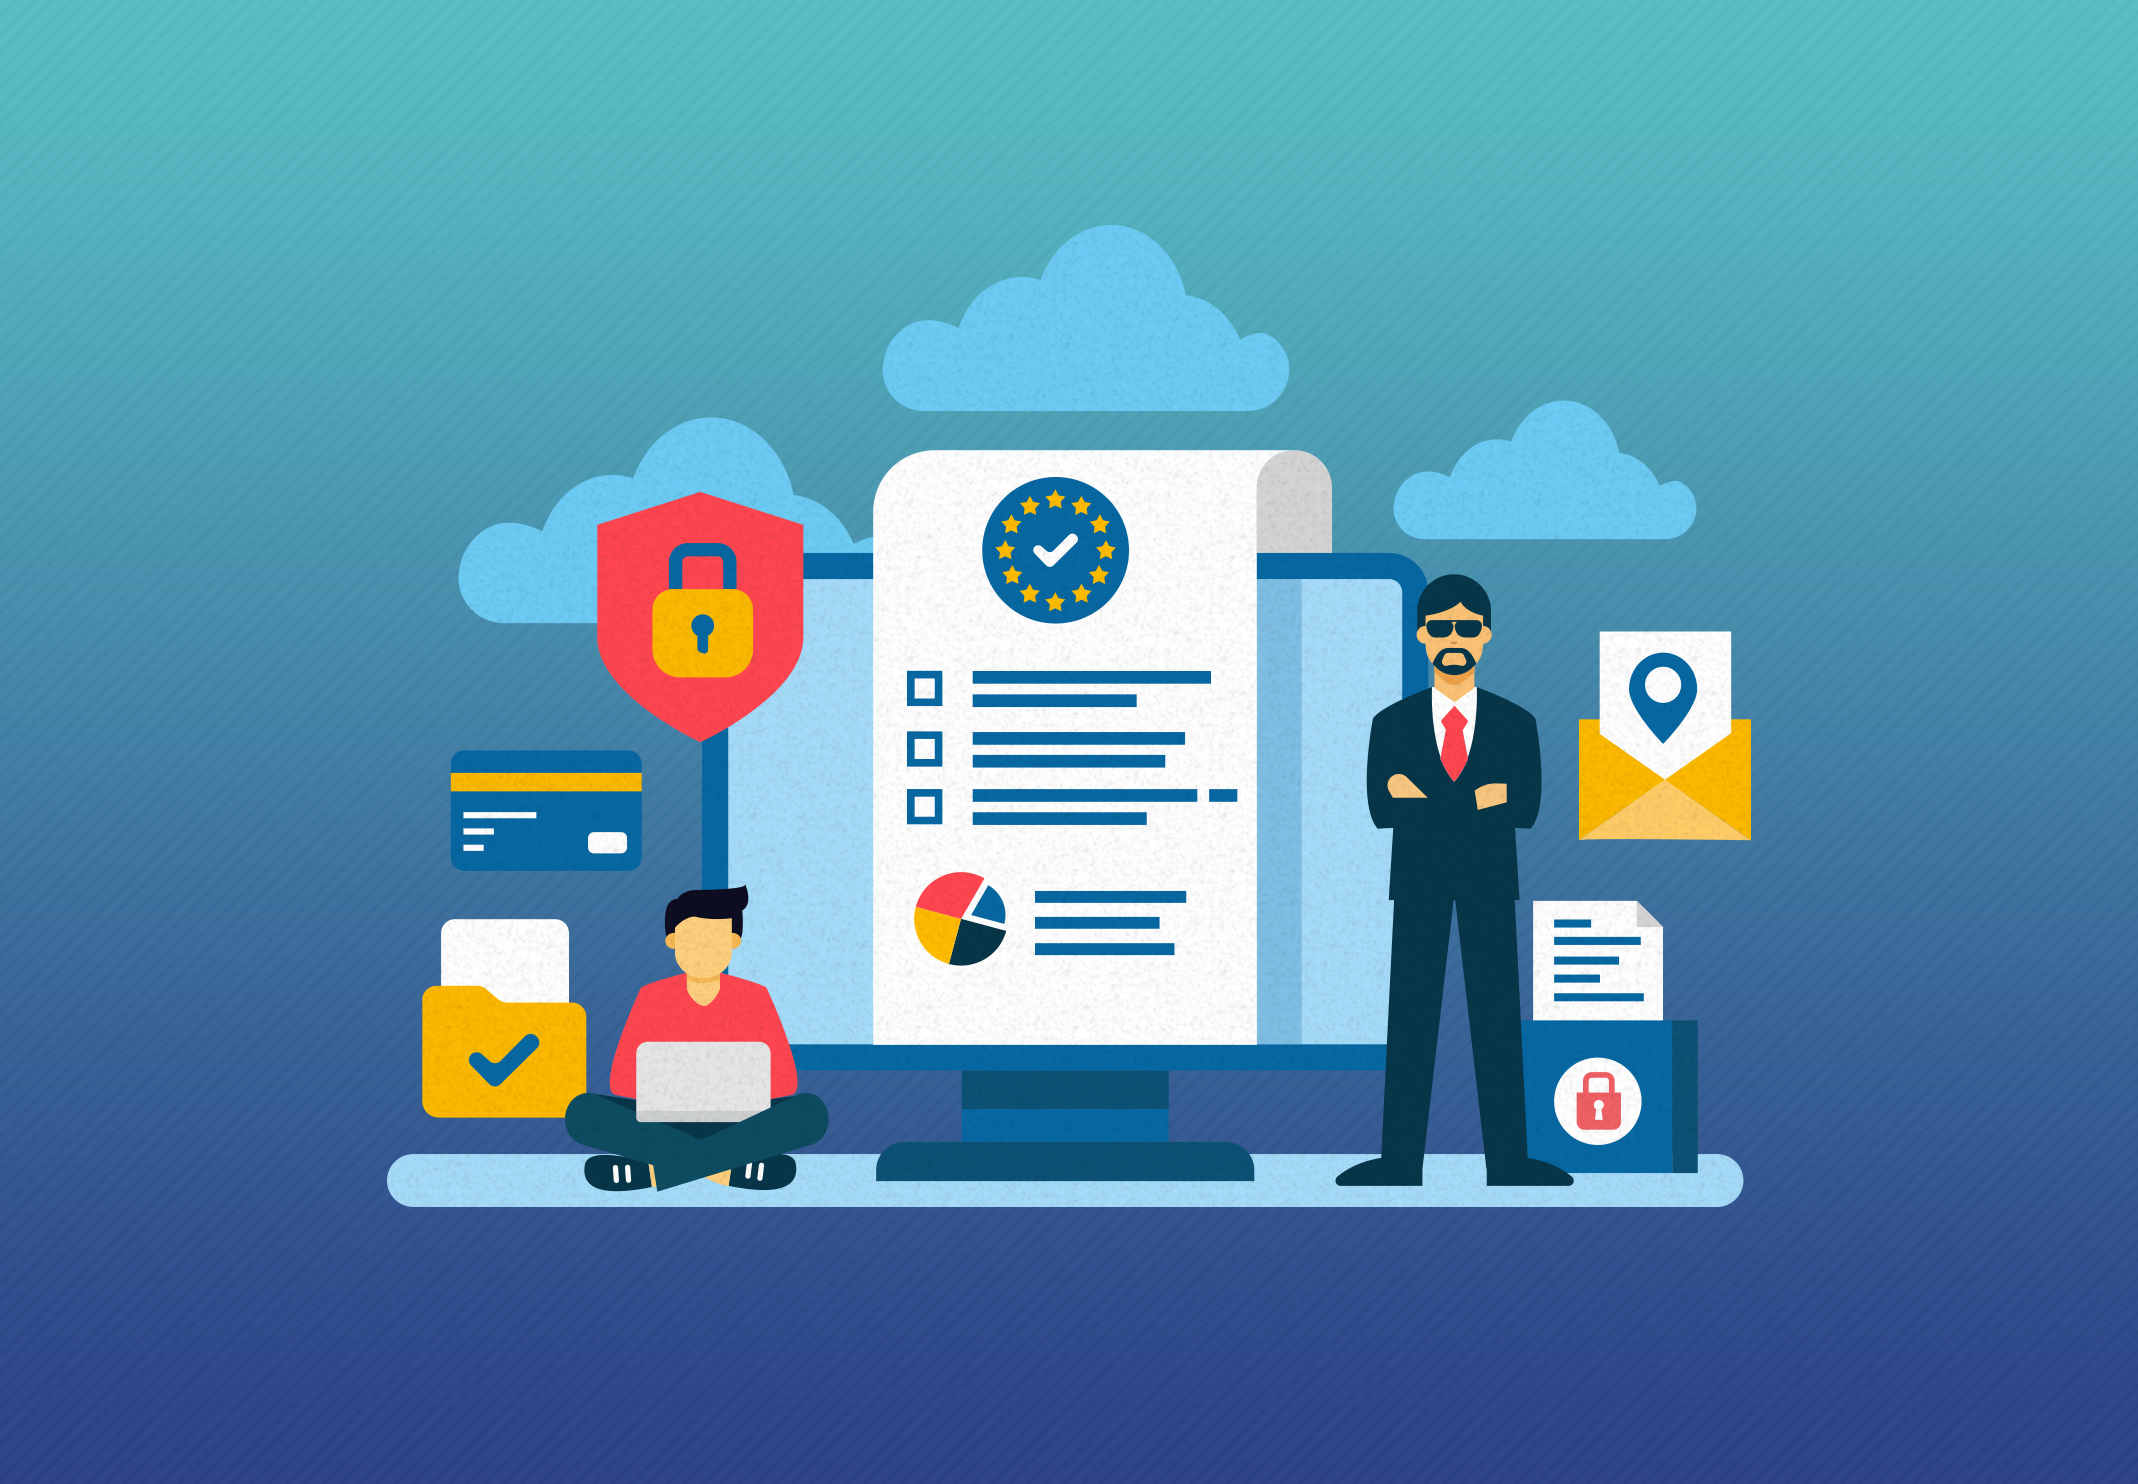 What is gdpr and its impact on companies blueprint business with the presence of the internet our lifestyle dramatically shifted to entrusting significant activities online the way people communicate and perform malvernweather Gallery